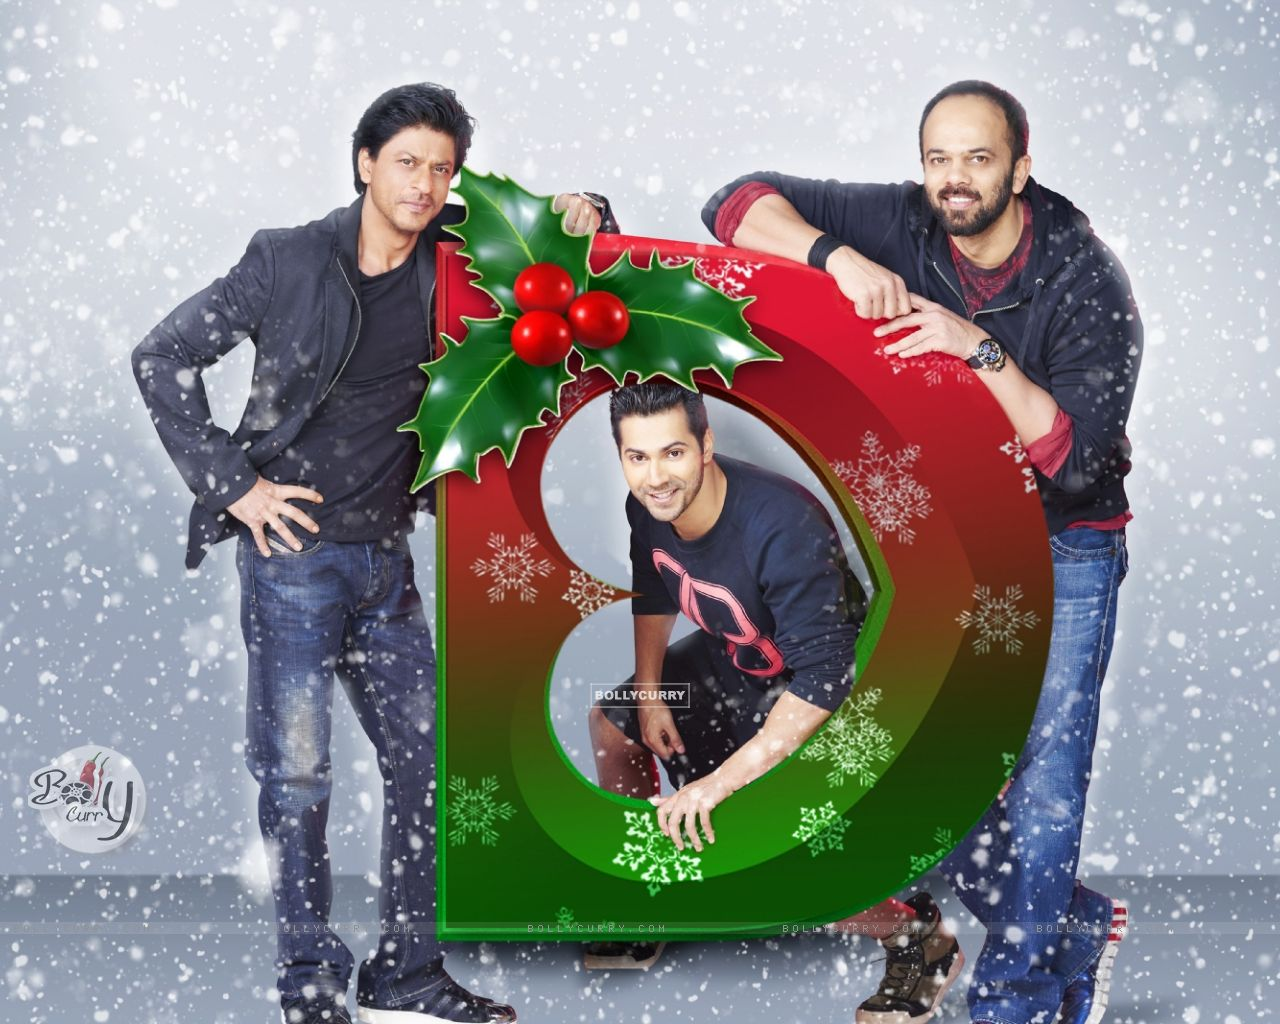 Dilwale boys celebrating Christmas with families and especially with kids worldwide (389474) size:1280x1024